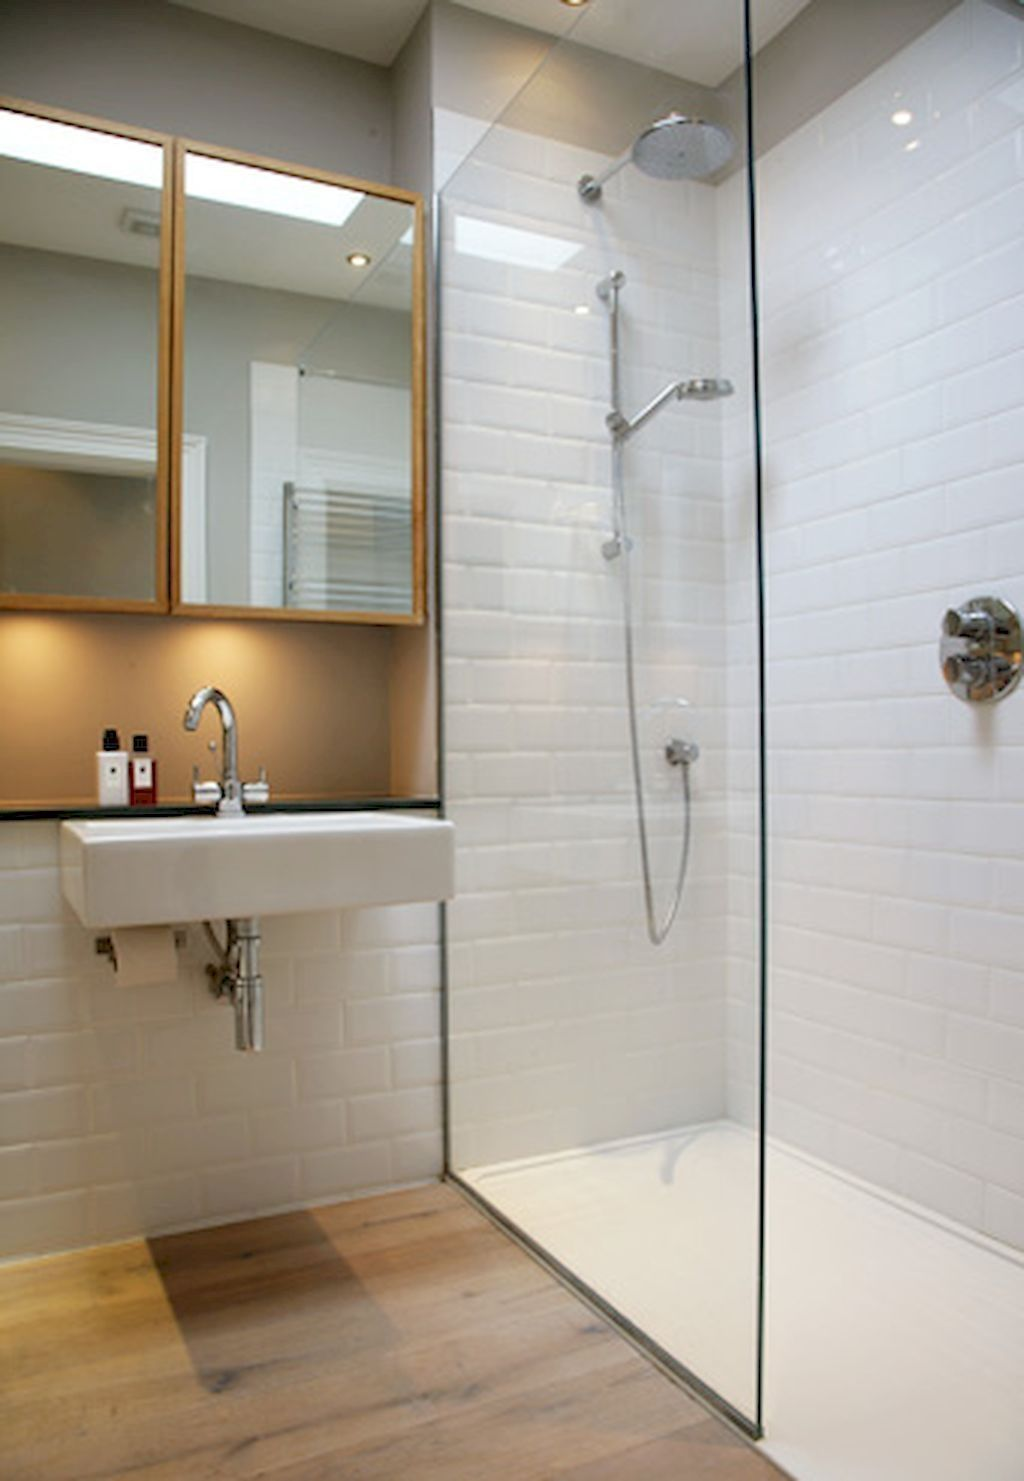 42 Perfect Shower Design Ideas To Remodel Your Bathroom Small Shower Room Ensuite Shower Room Shower Room